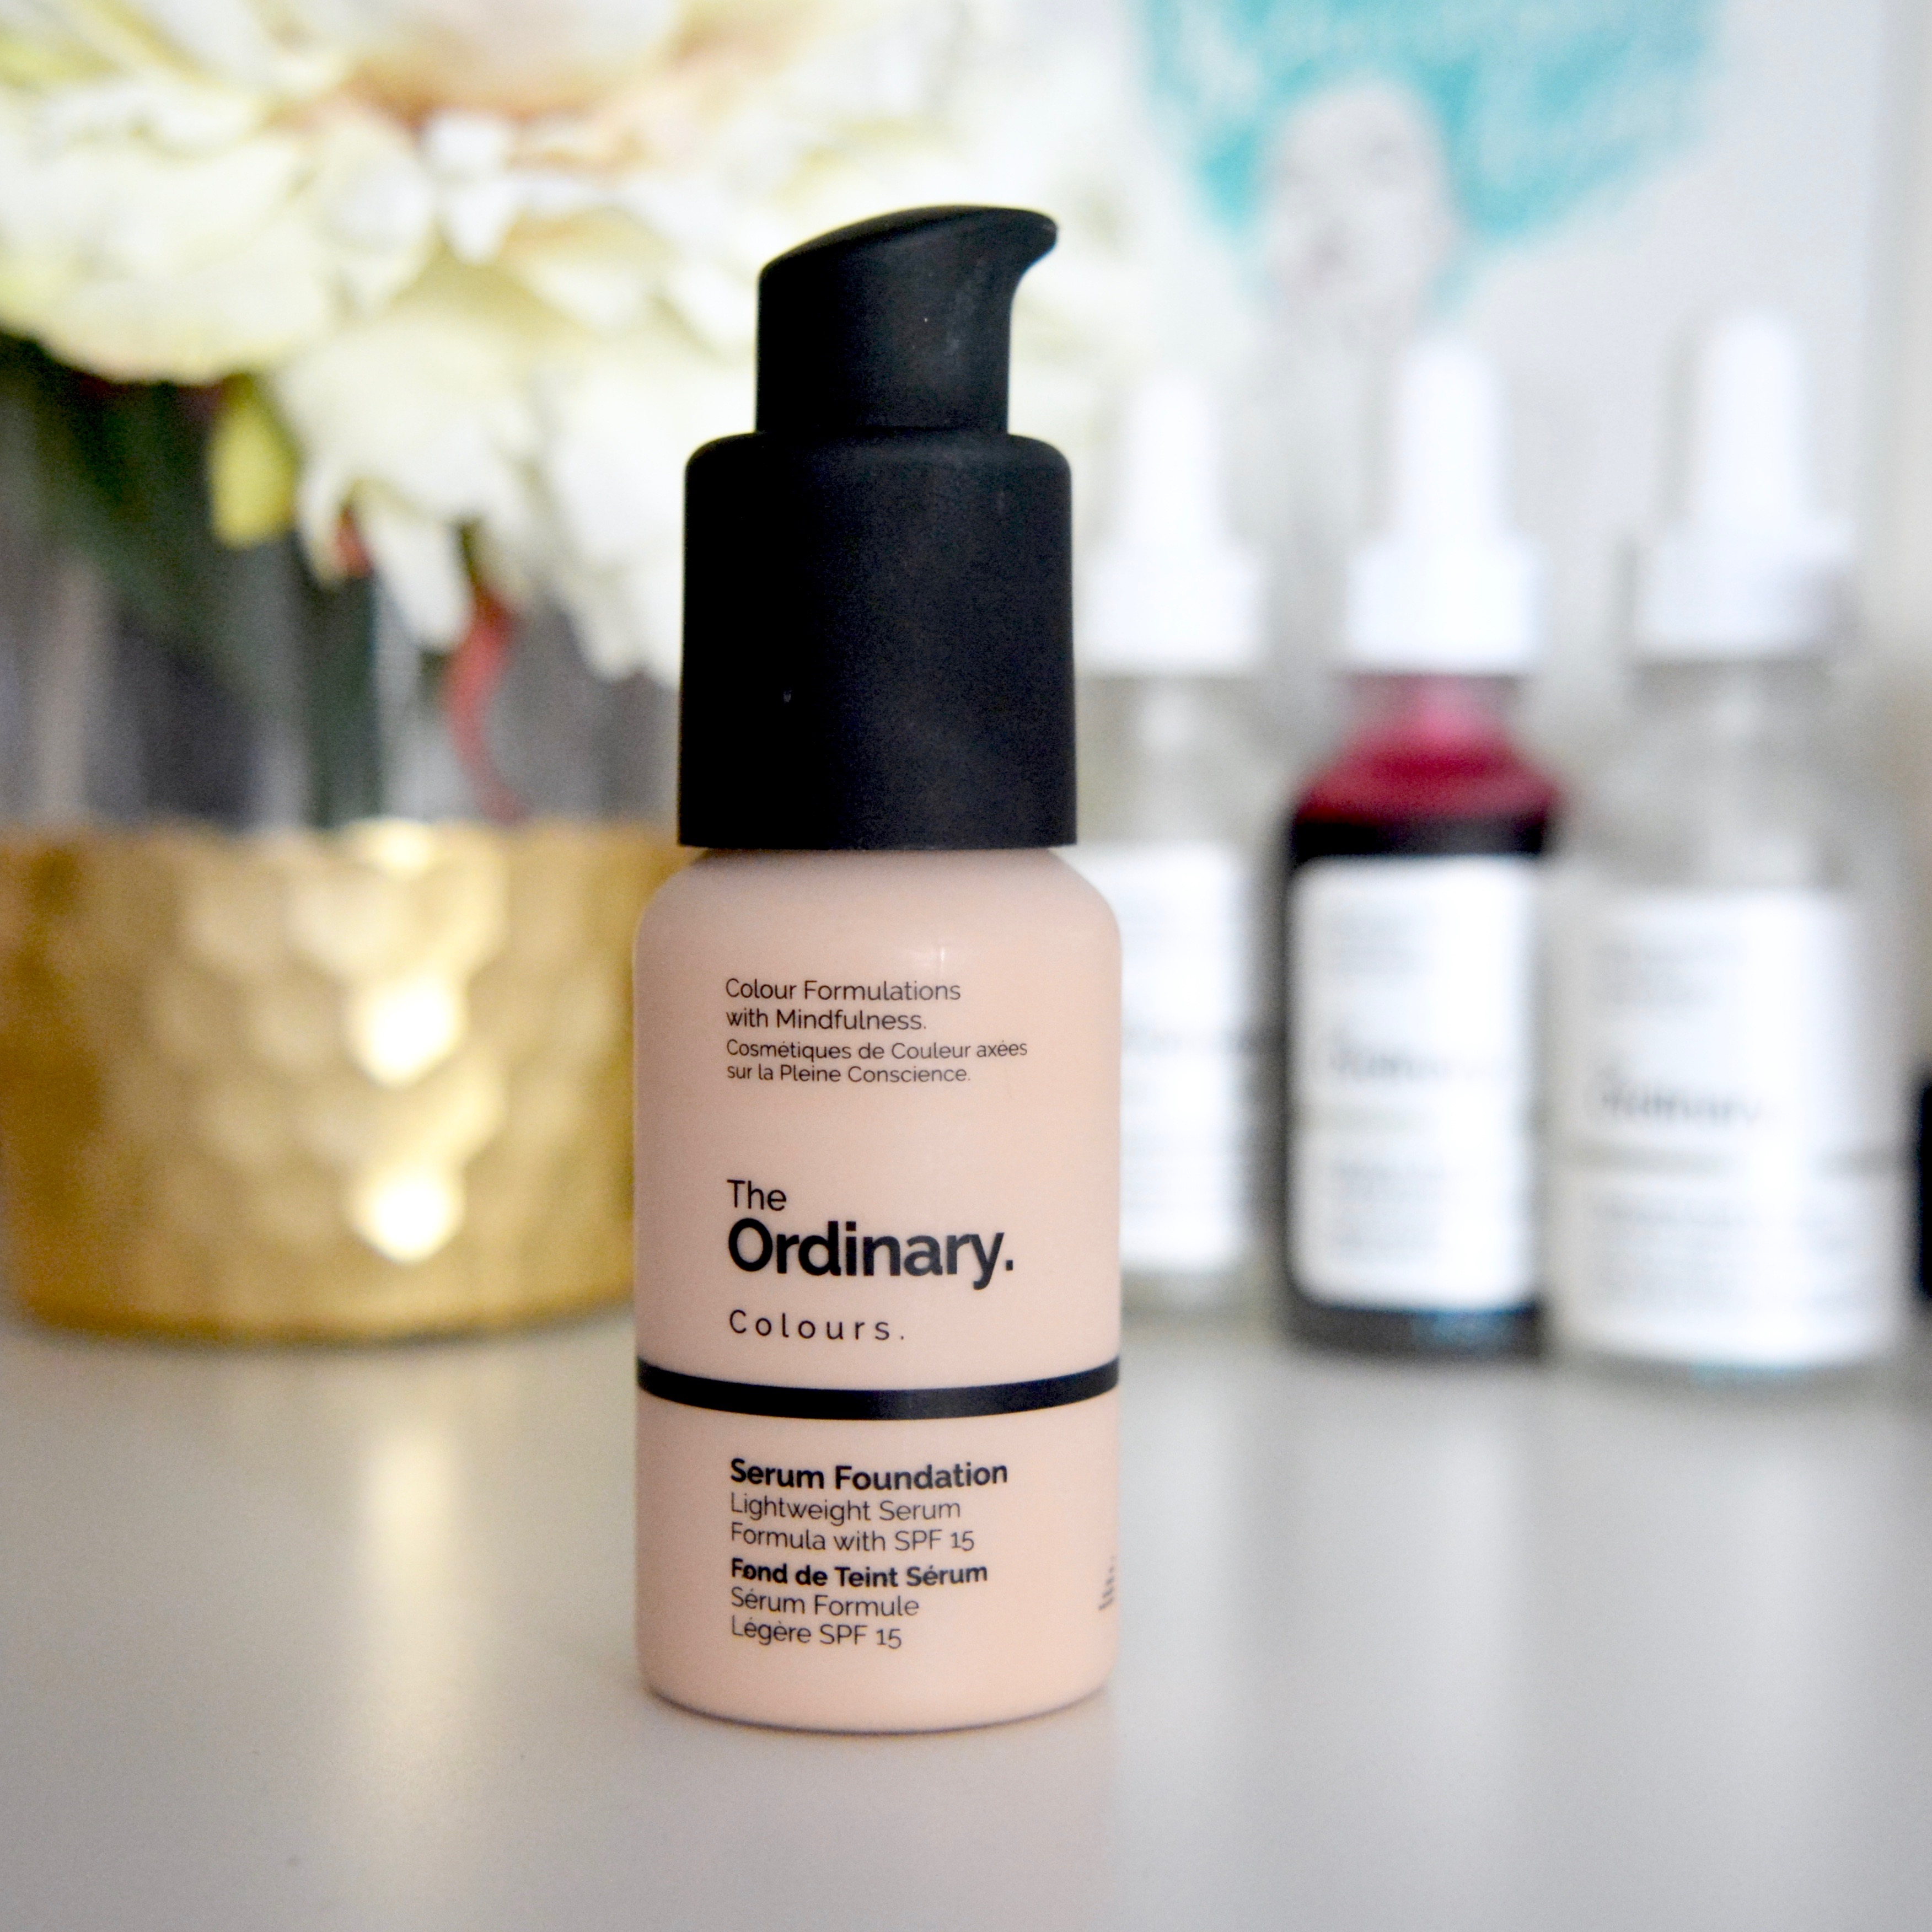 The Ordinary Serum Foundation review: how it covers my rosacea.